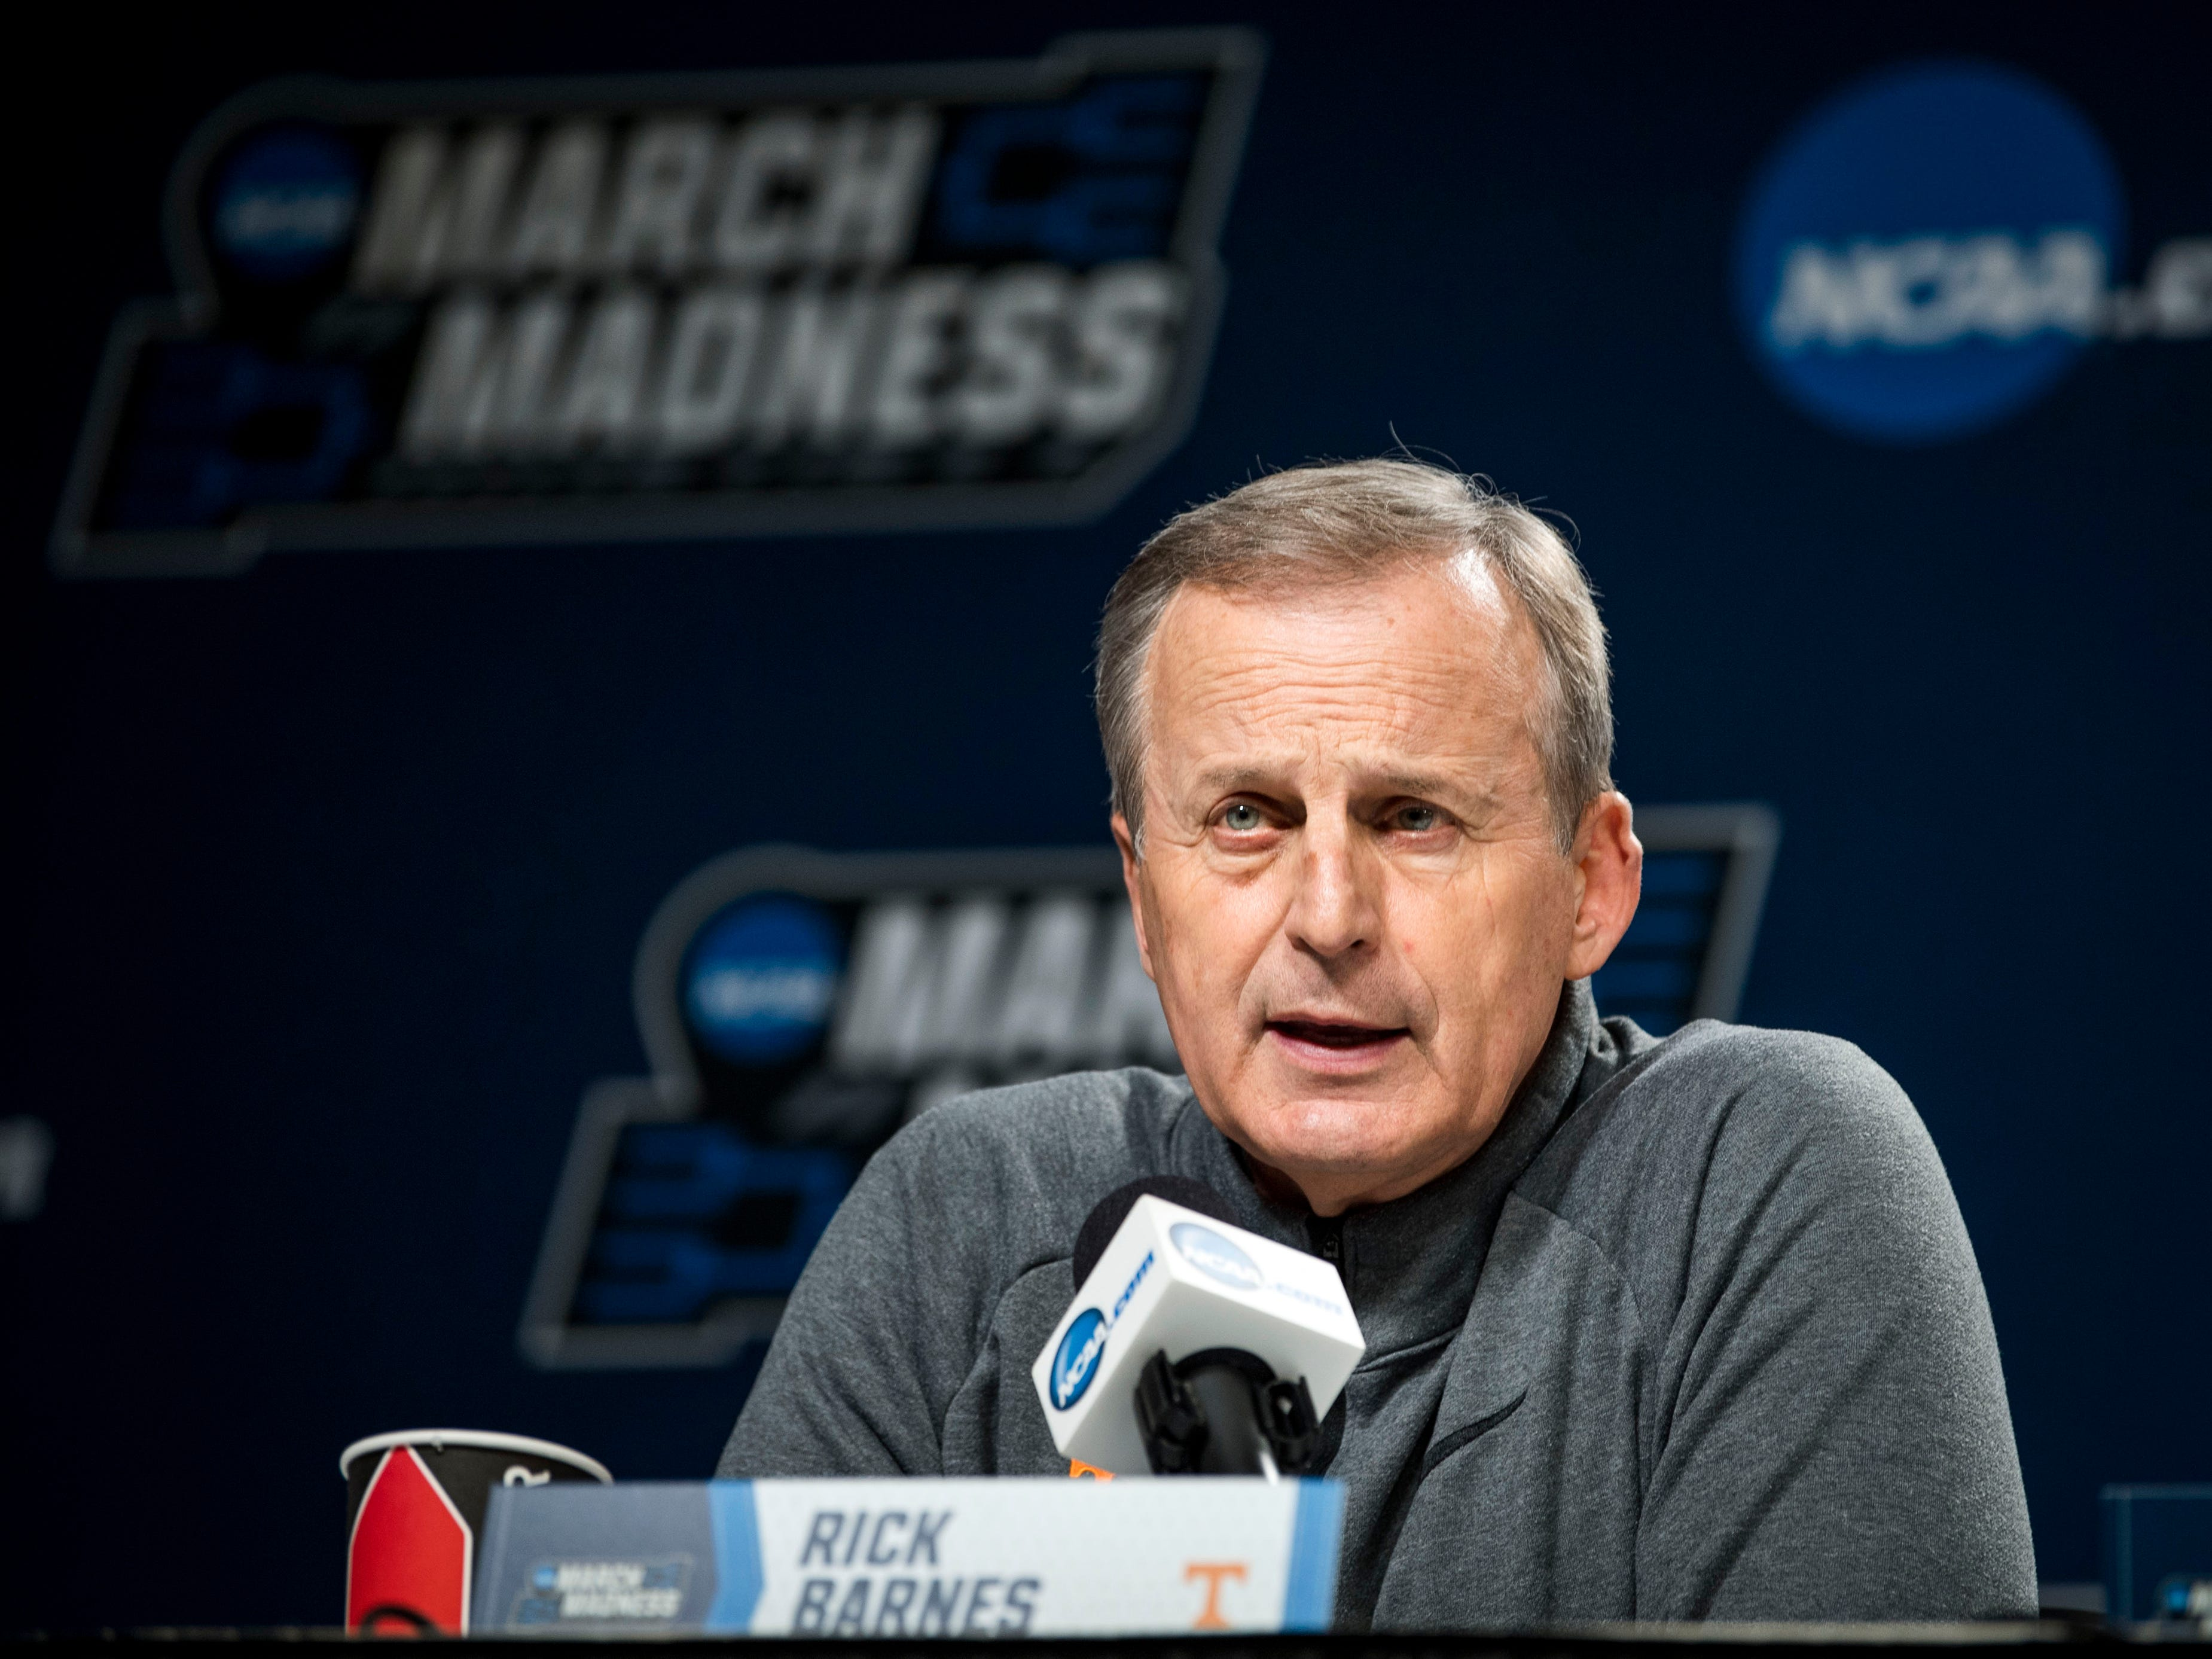 Tennessee head coach Rick Barnes speaks at a press conference before Tennessee takes the court for practice on Thursday, March 21, 2019, before their first round NCAA Tournament game against Colgate at Nationwide Arena in Columbus, Ohio.